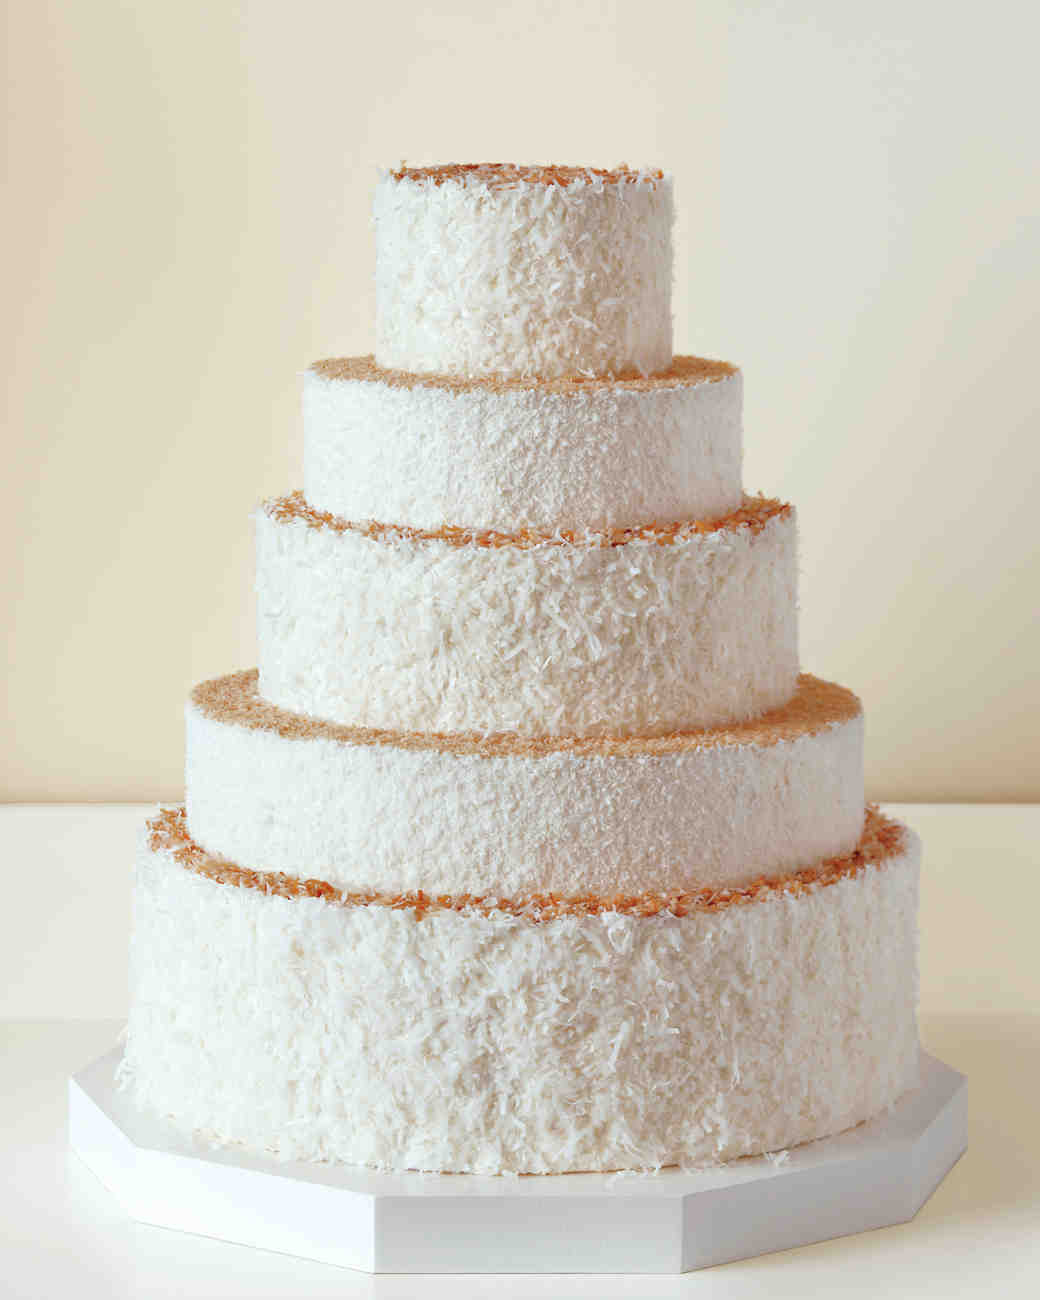 Wedding Cakes: New Takes On Traditional Wedding Cake Flavors